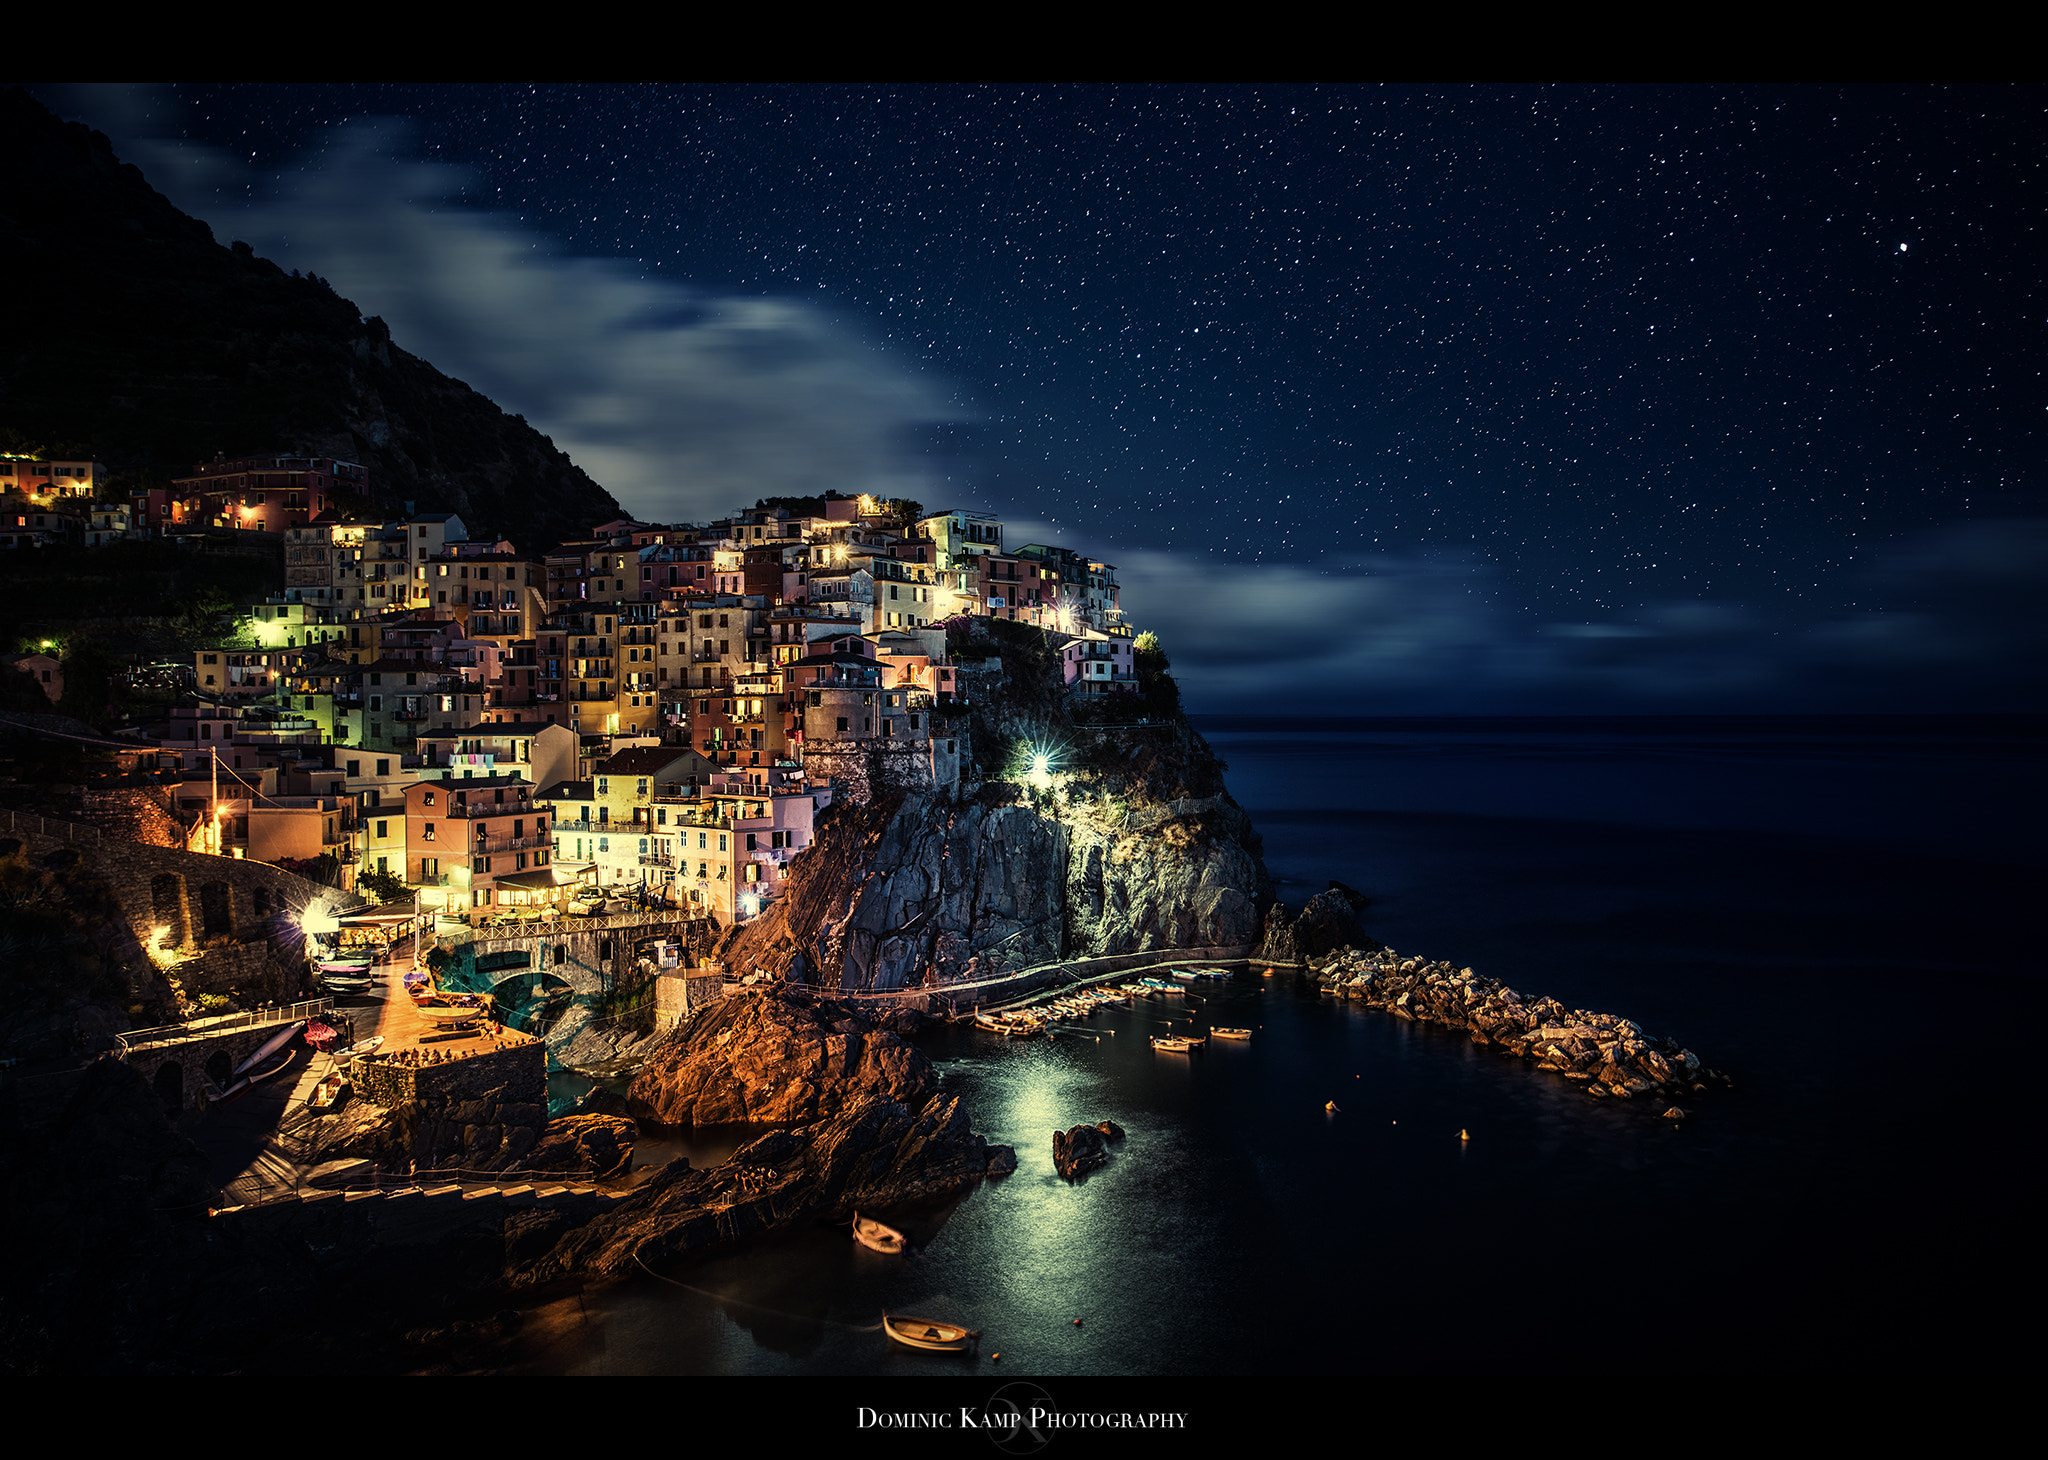 Photograph Midnight in Manarola by Dominic Kamp on 500px